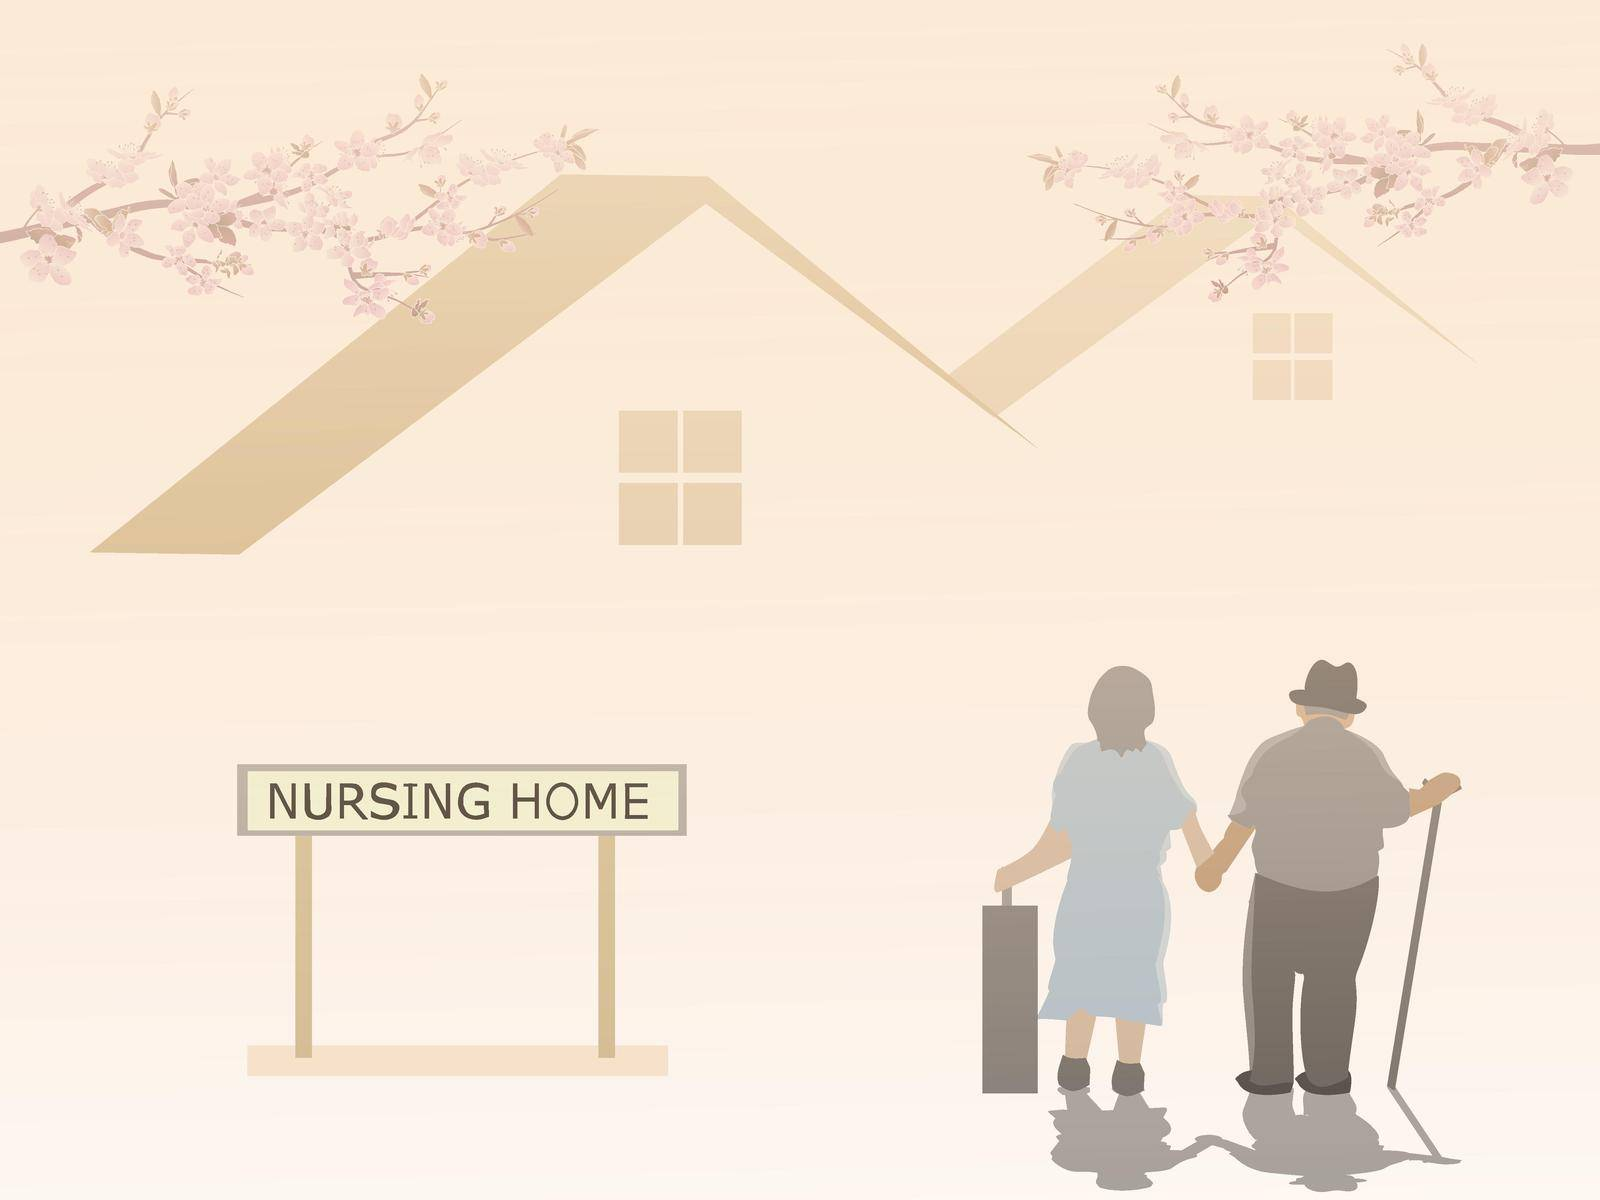 An elderly couple is entering a nursing home with a house and pink sky in the background. by moo12